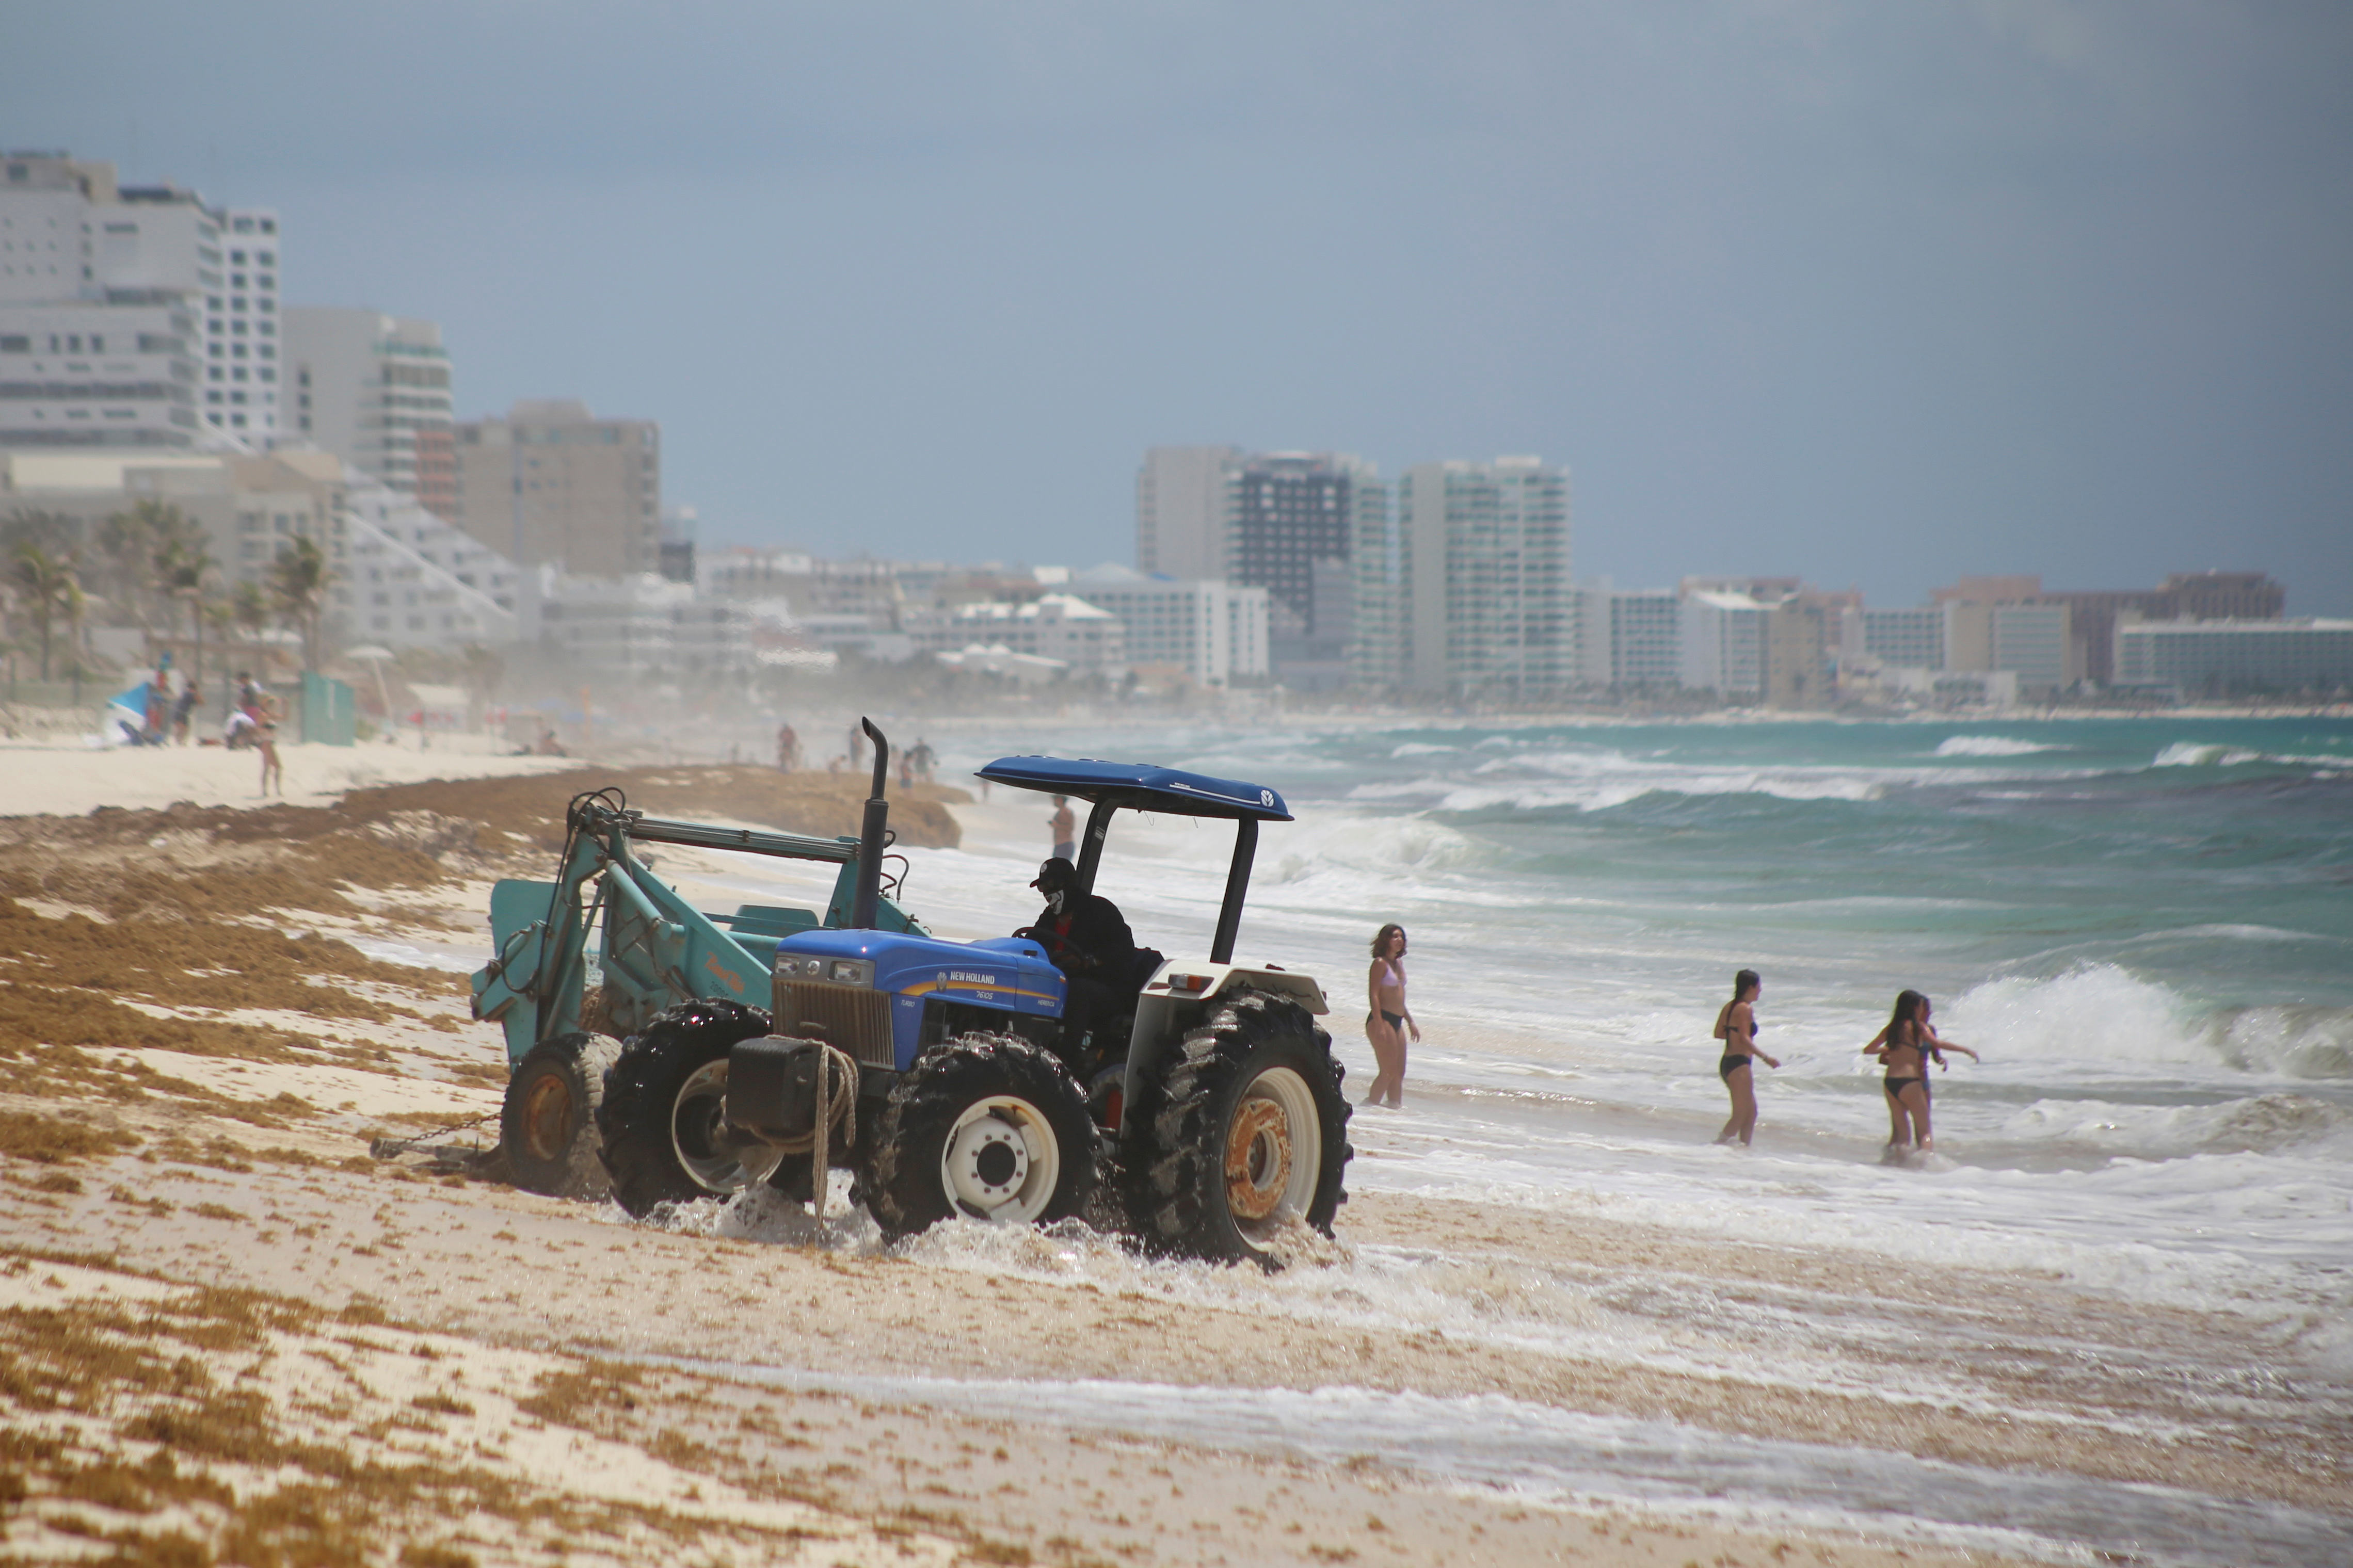 A tractor pulls a trailer with sargassum at Marlin Beach as tourists enjoy the beach in Cancun, Mexico July 23, 2021. REUTERS/Paola Chiomante